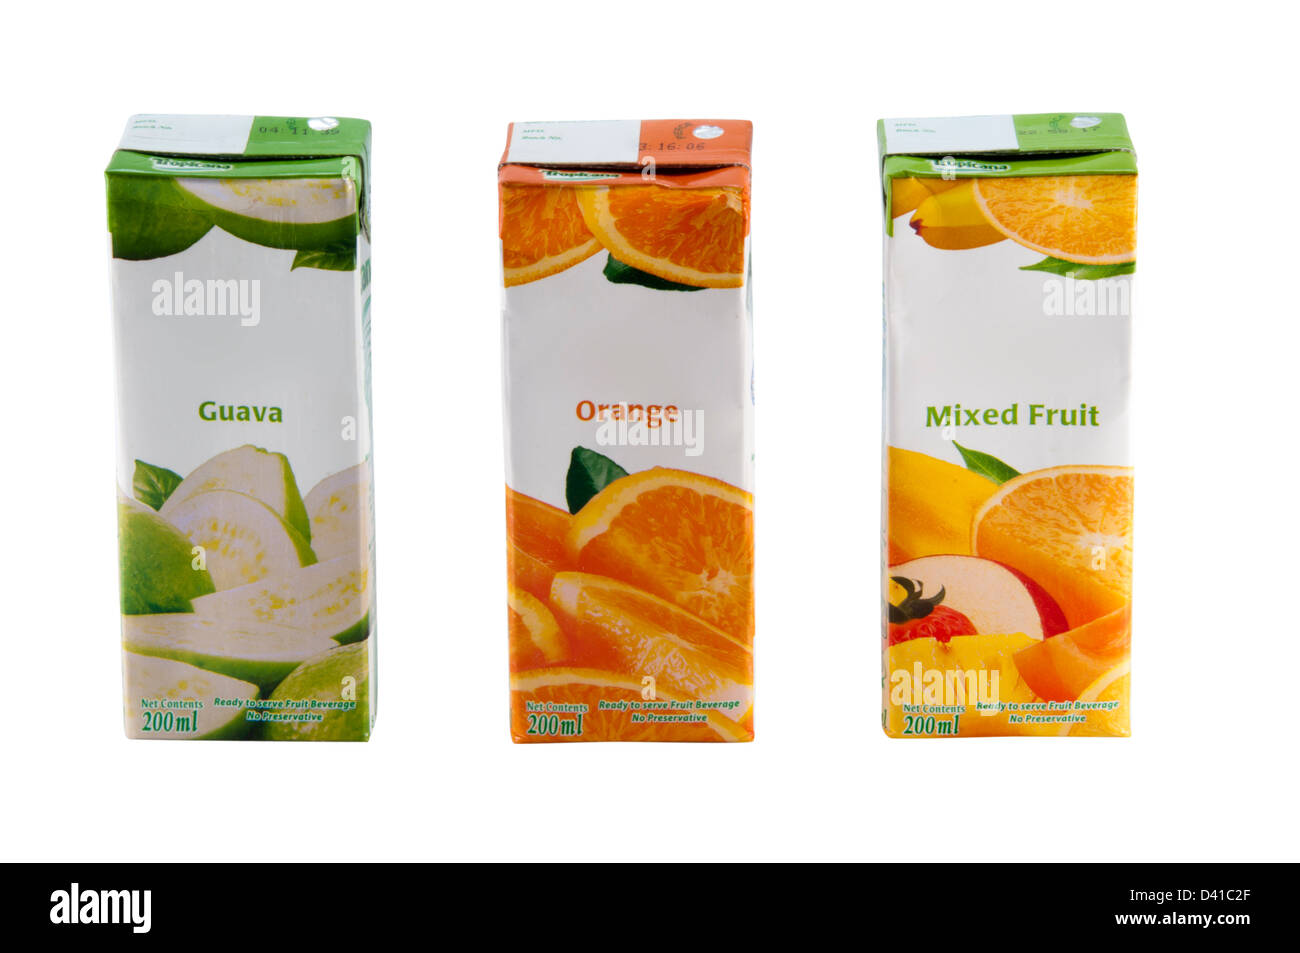 Juice boxes - Guava , orange, mixed fruit - Stock Image